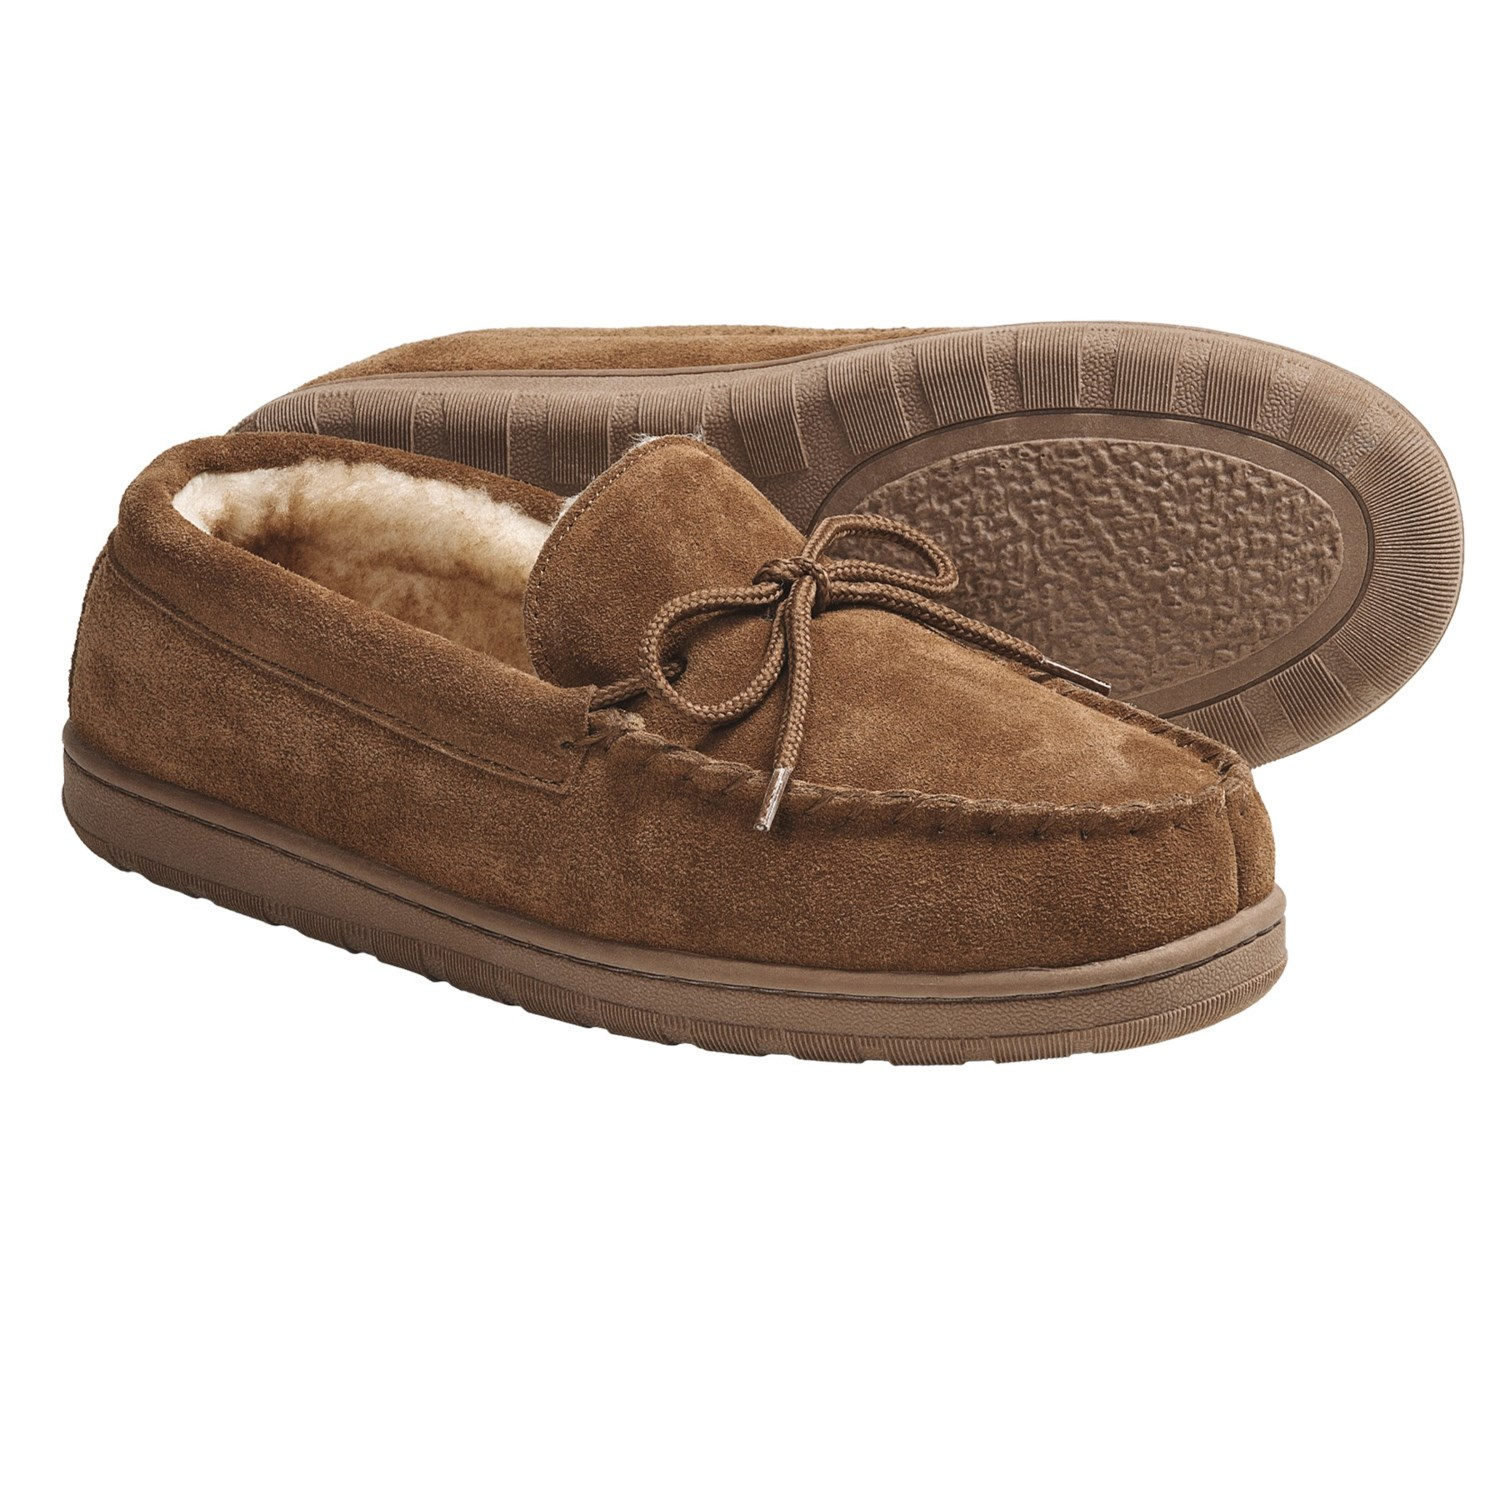 Mens Suede Shoes. Complement attire with men's suede shoes. Wear khaki shorts with suede sandals or go urban with suede sneakers. Men's shoes by Puma, Birkenstock and others are waiting to fill your shoe collection.